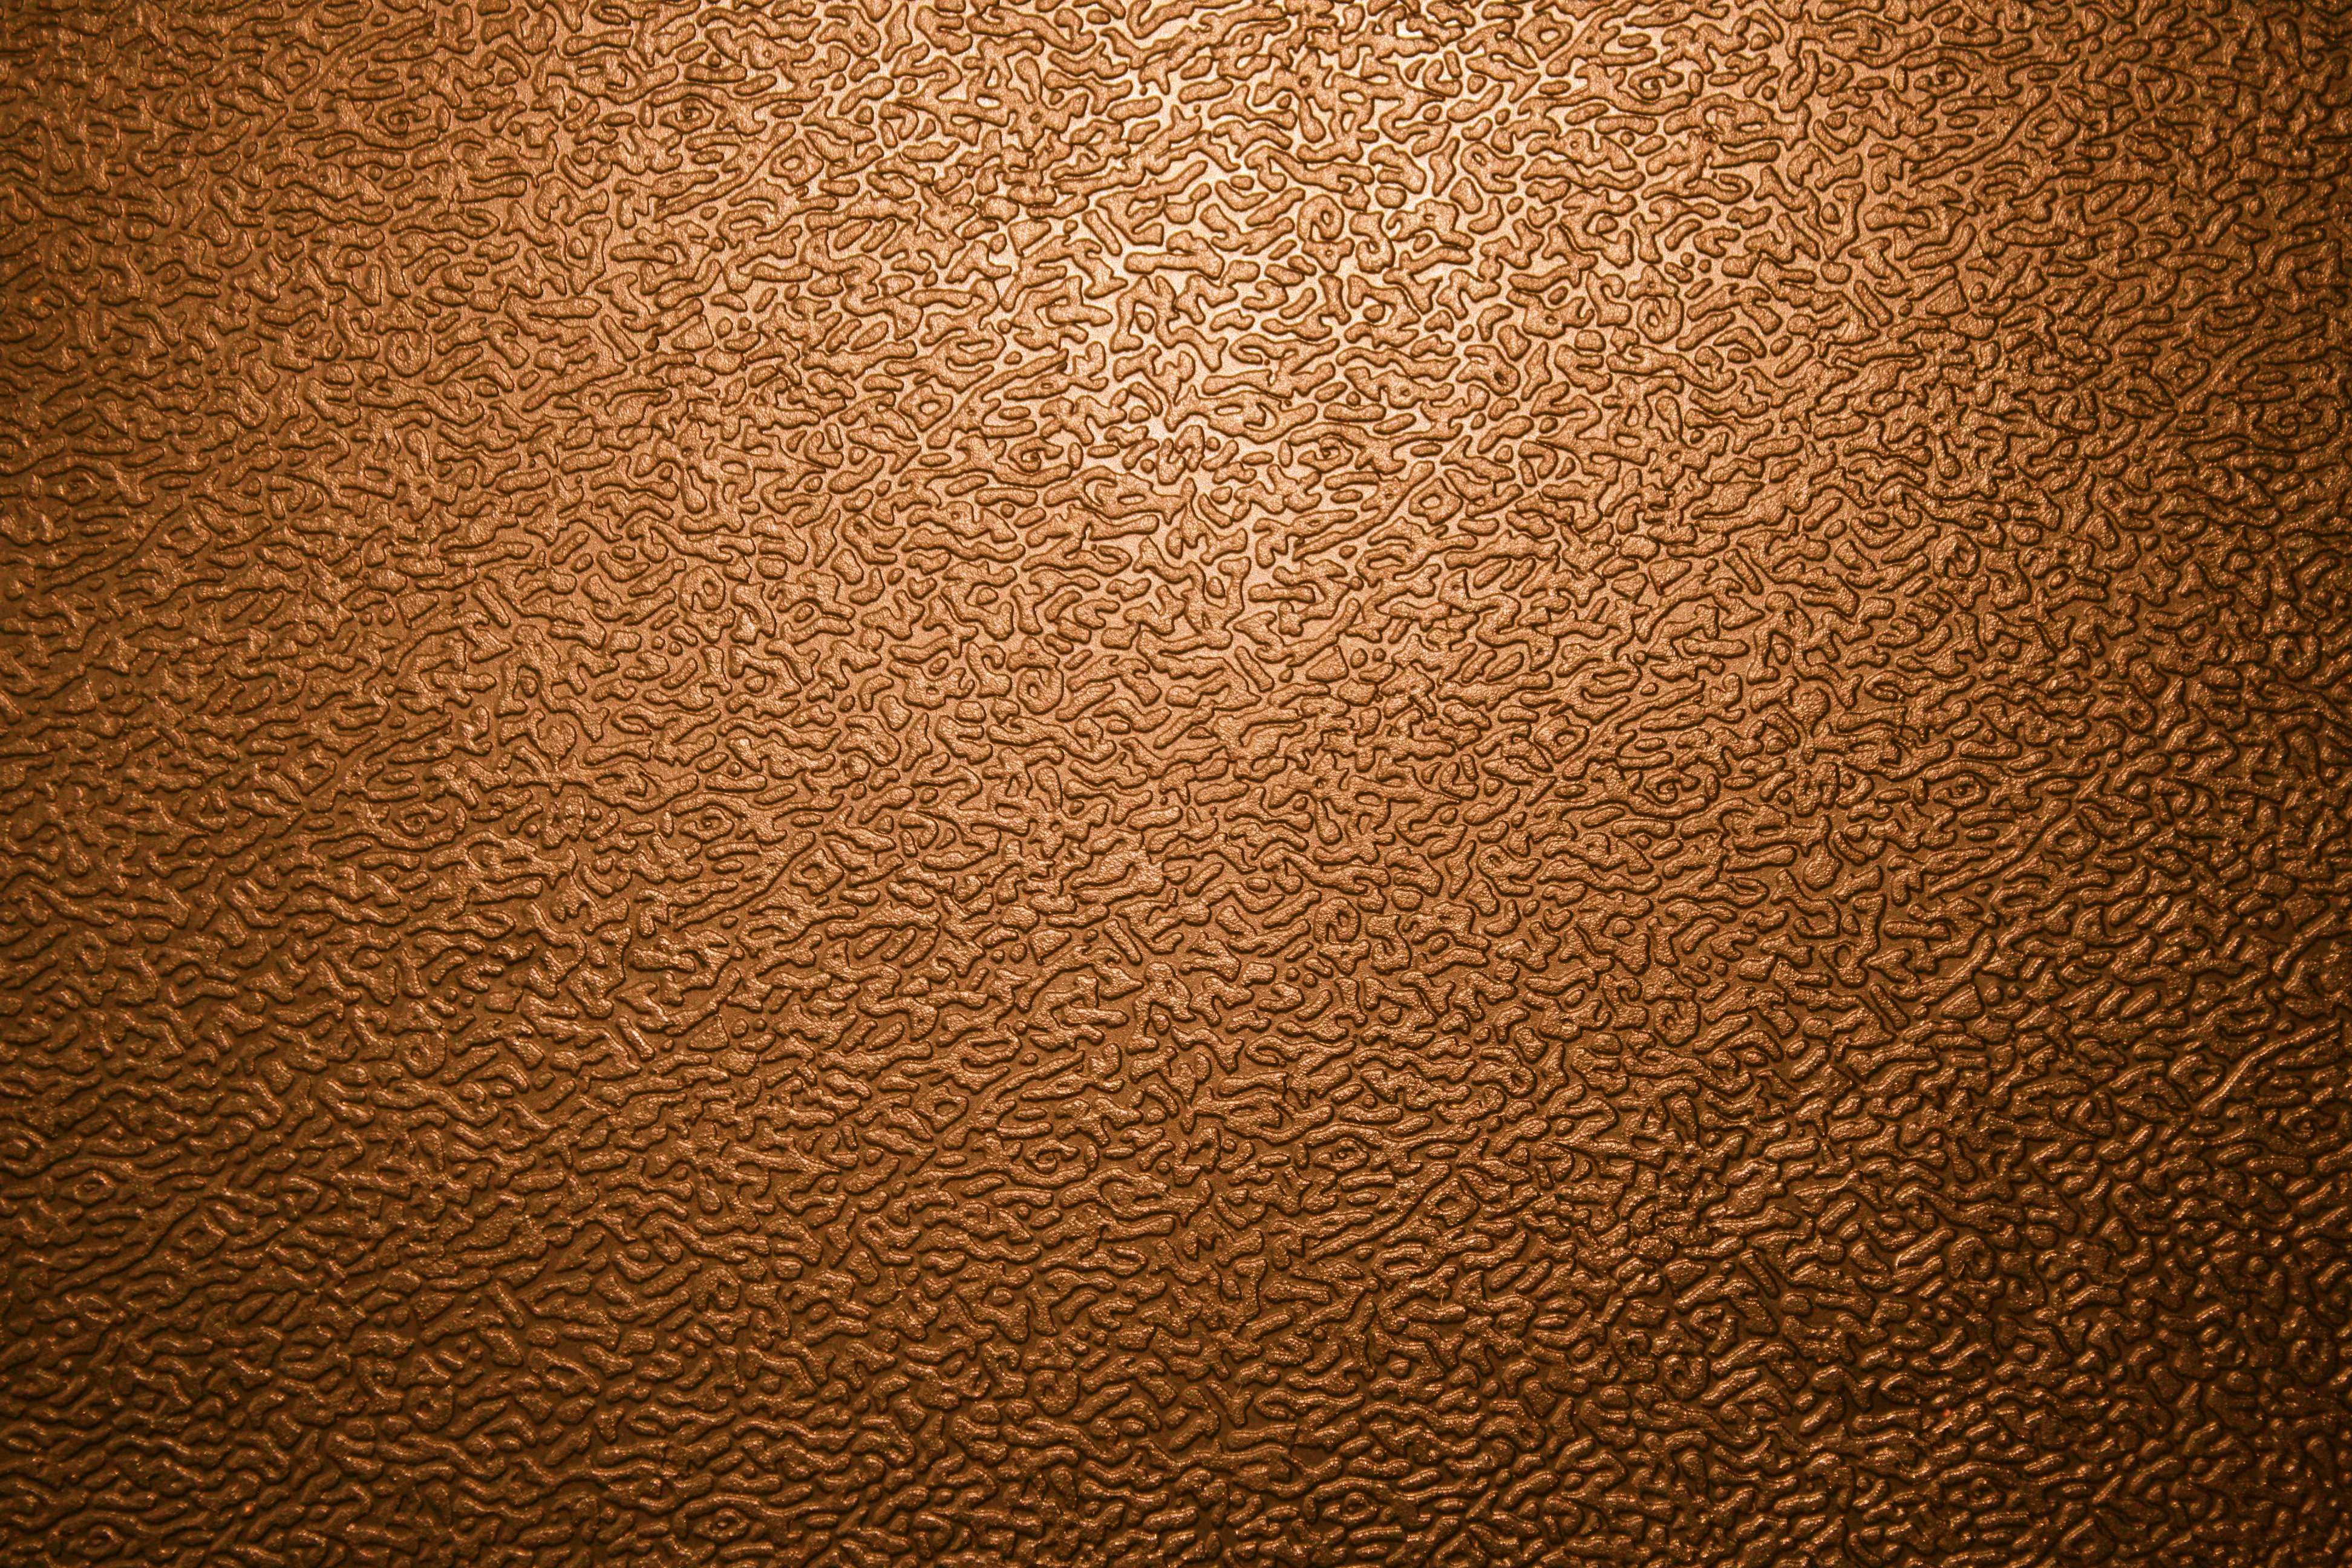 Textured Brown Plastic Close Up